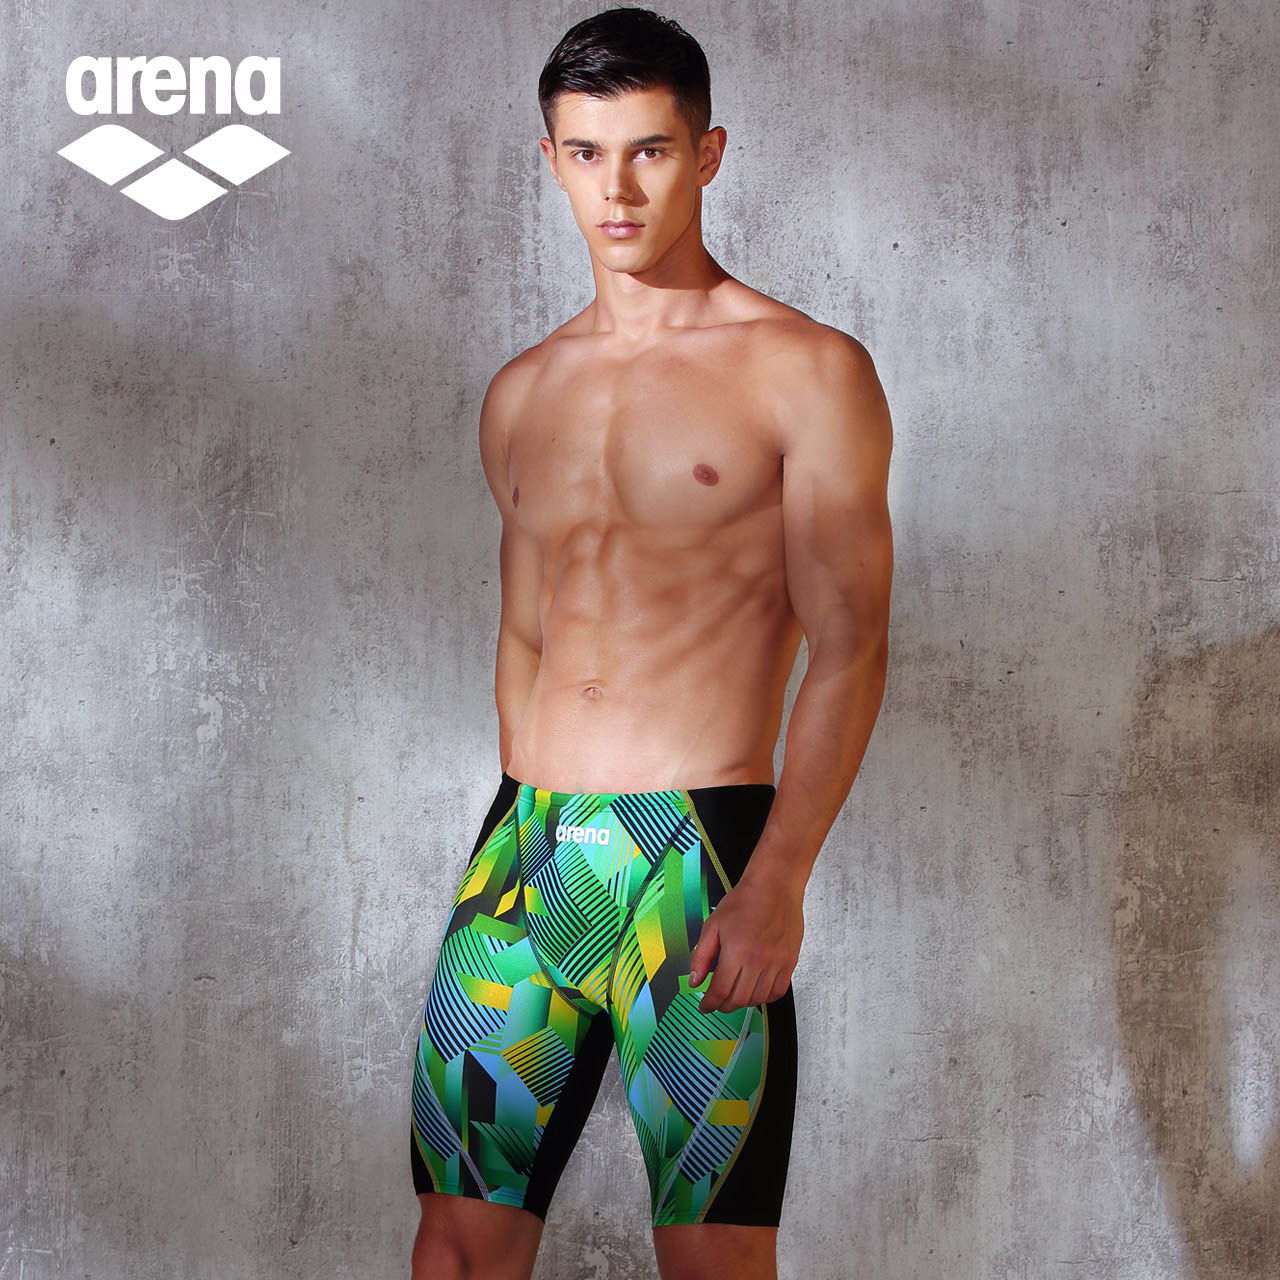 bf4edf1eb9 arena Ariane men's swim trunks five points knee-length swimming trunks male  high-elastic. Zoom · lightbox moreview · lightbox moreview ...